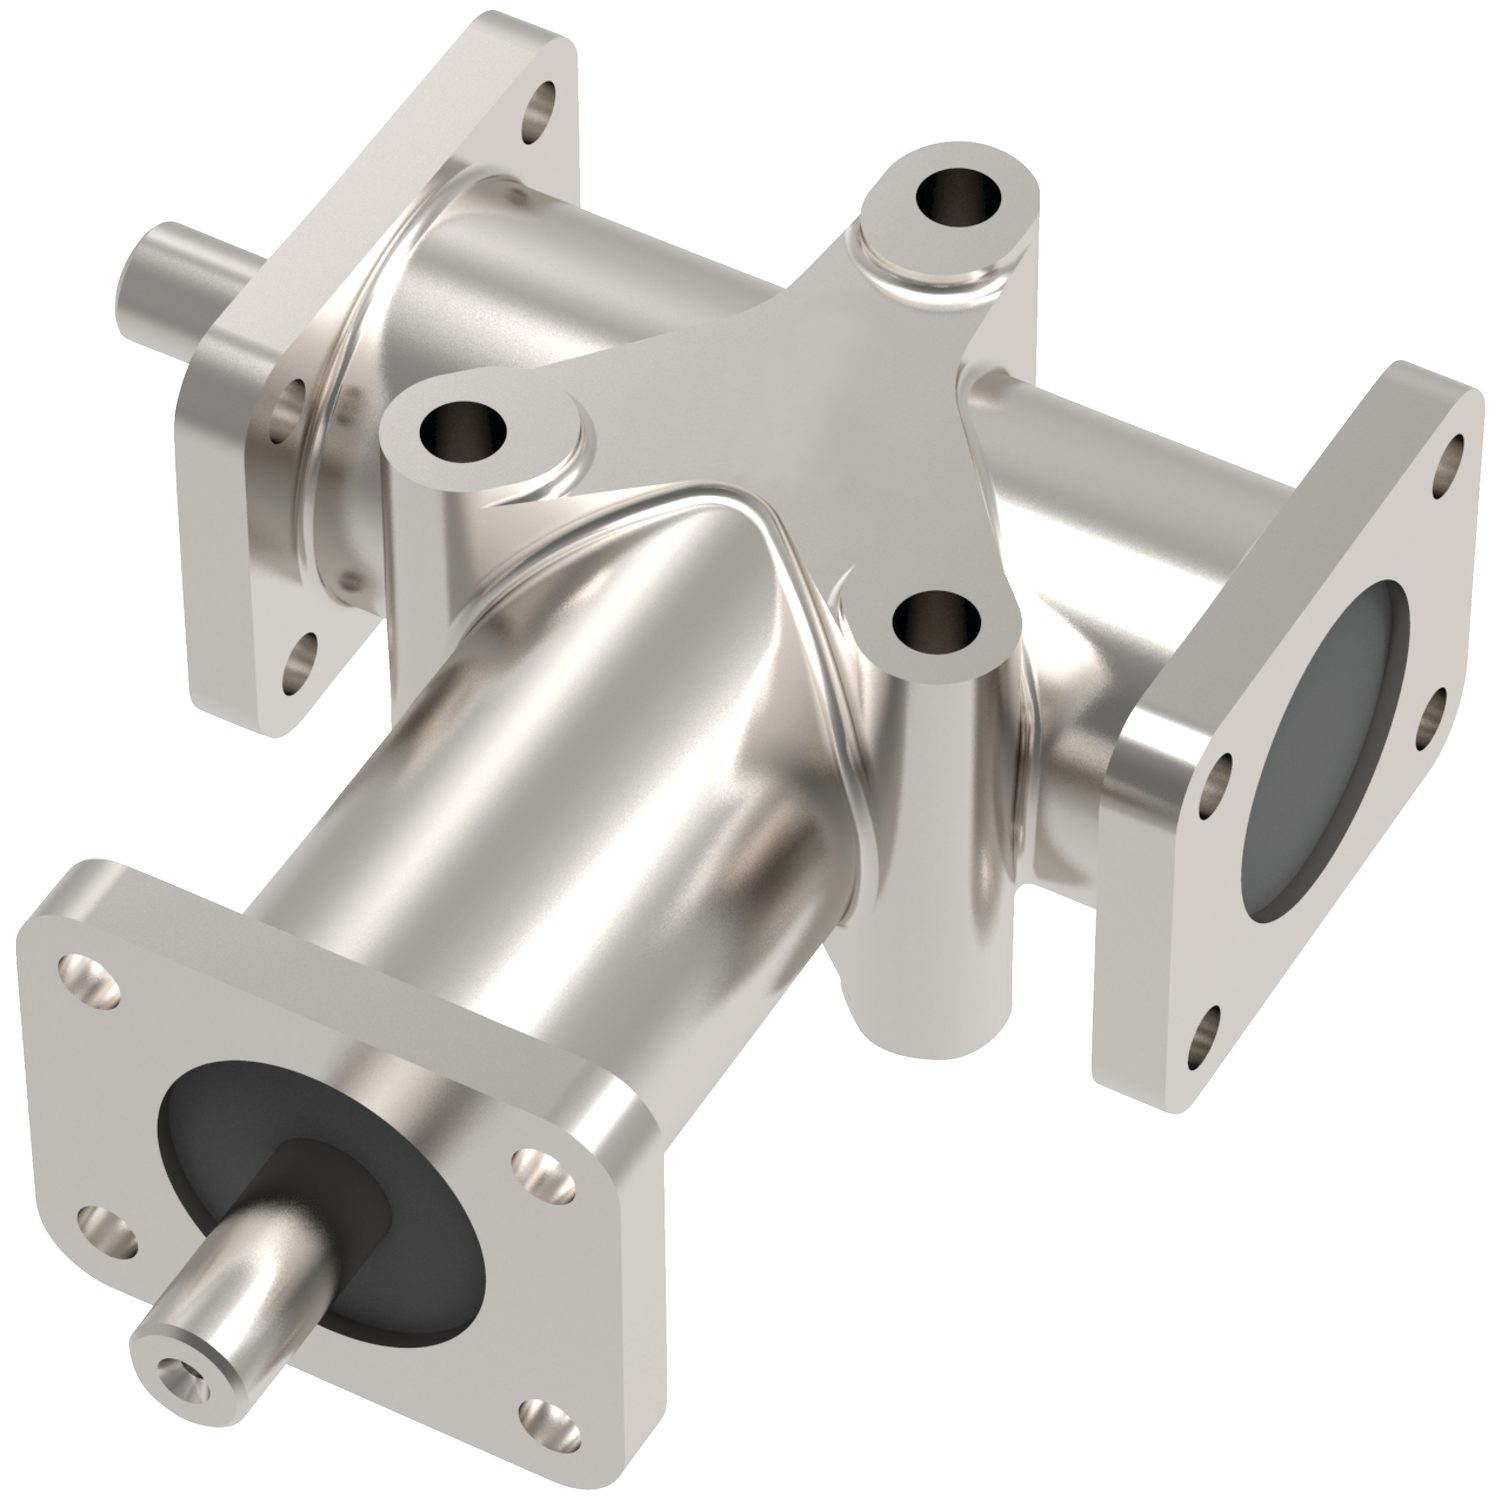 Stainless Right Angle Drives - 2 Shafts Stainless steel right angle gear boxes, two and three shafts.